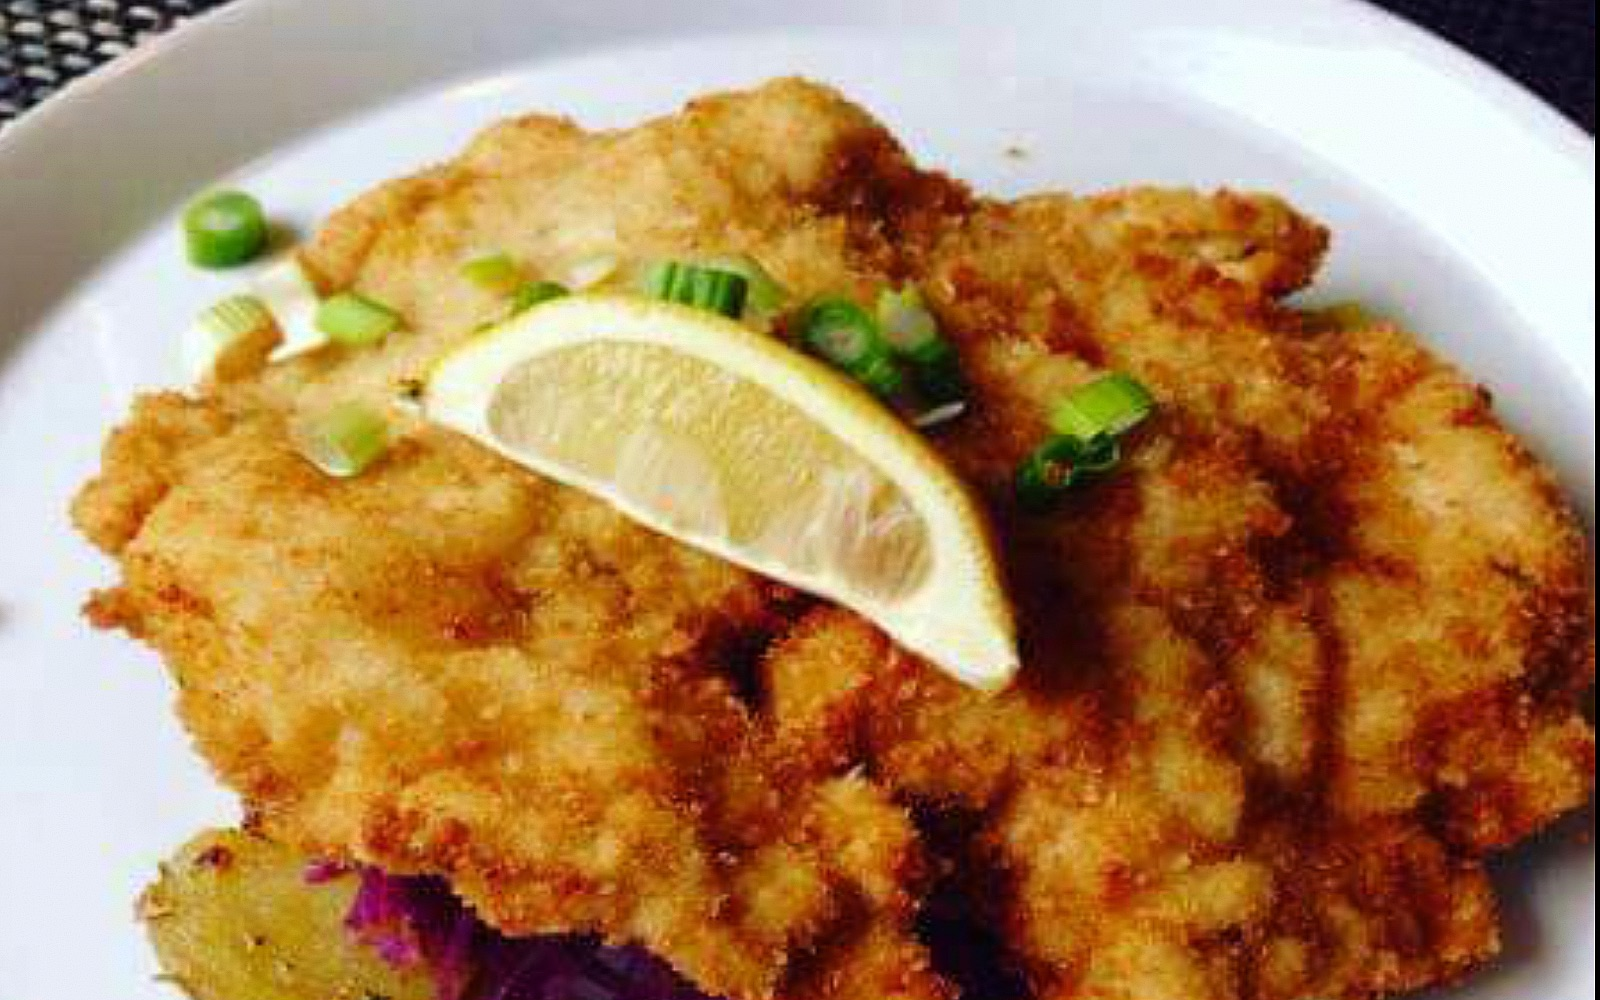 The schnitzel at Jagerhof, Lower Lonsdale